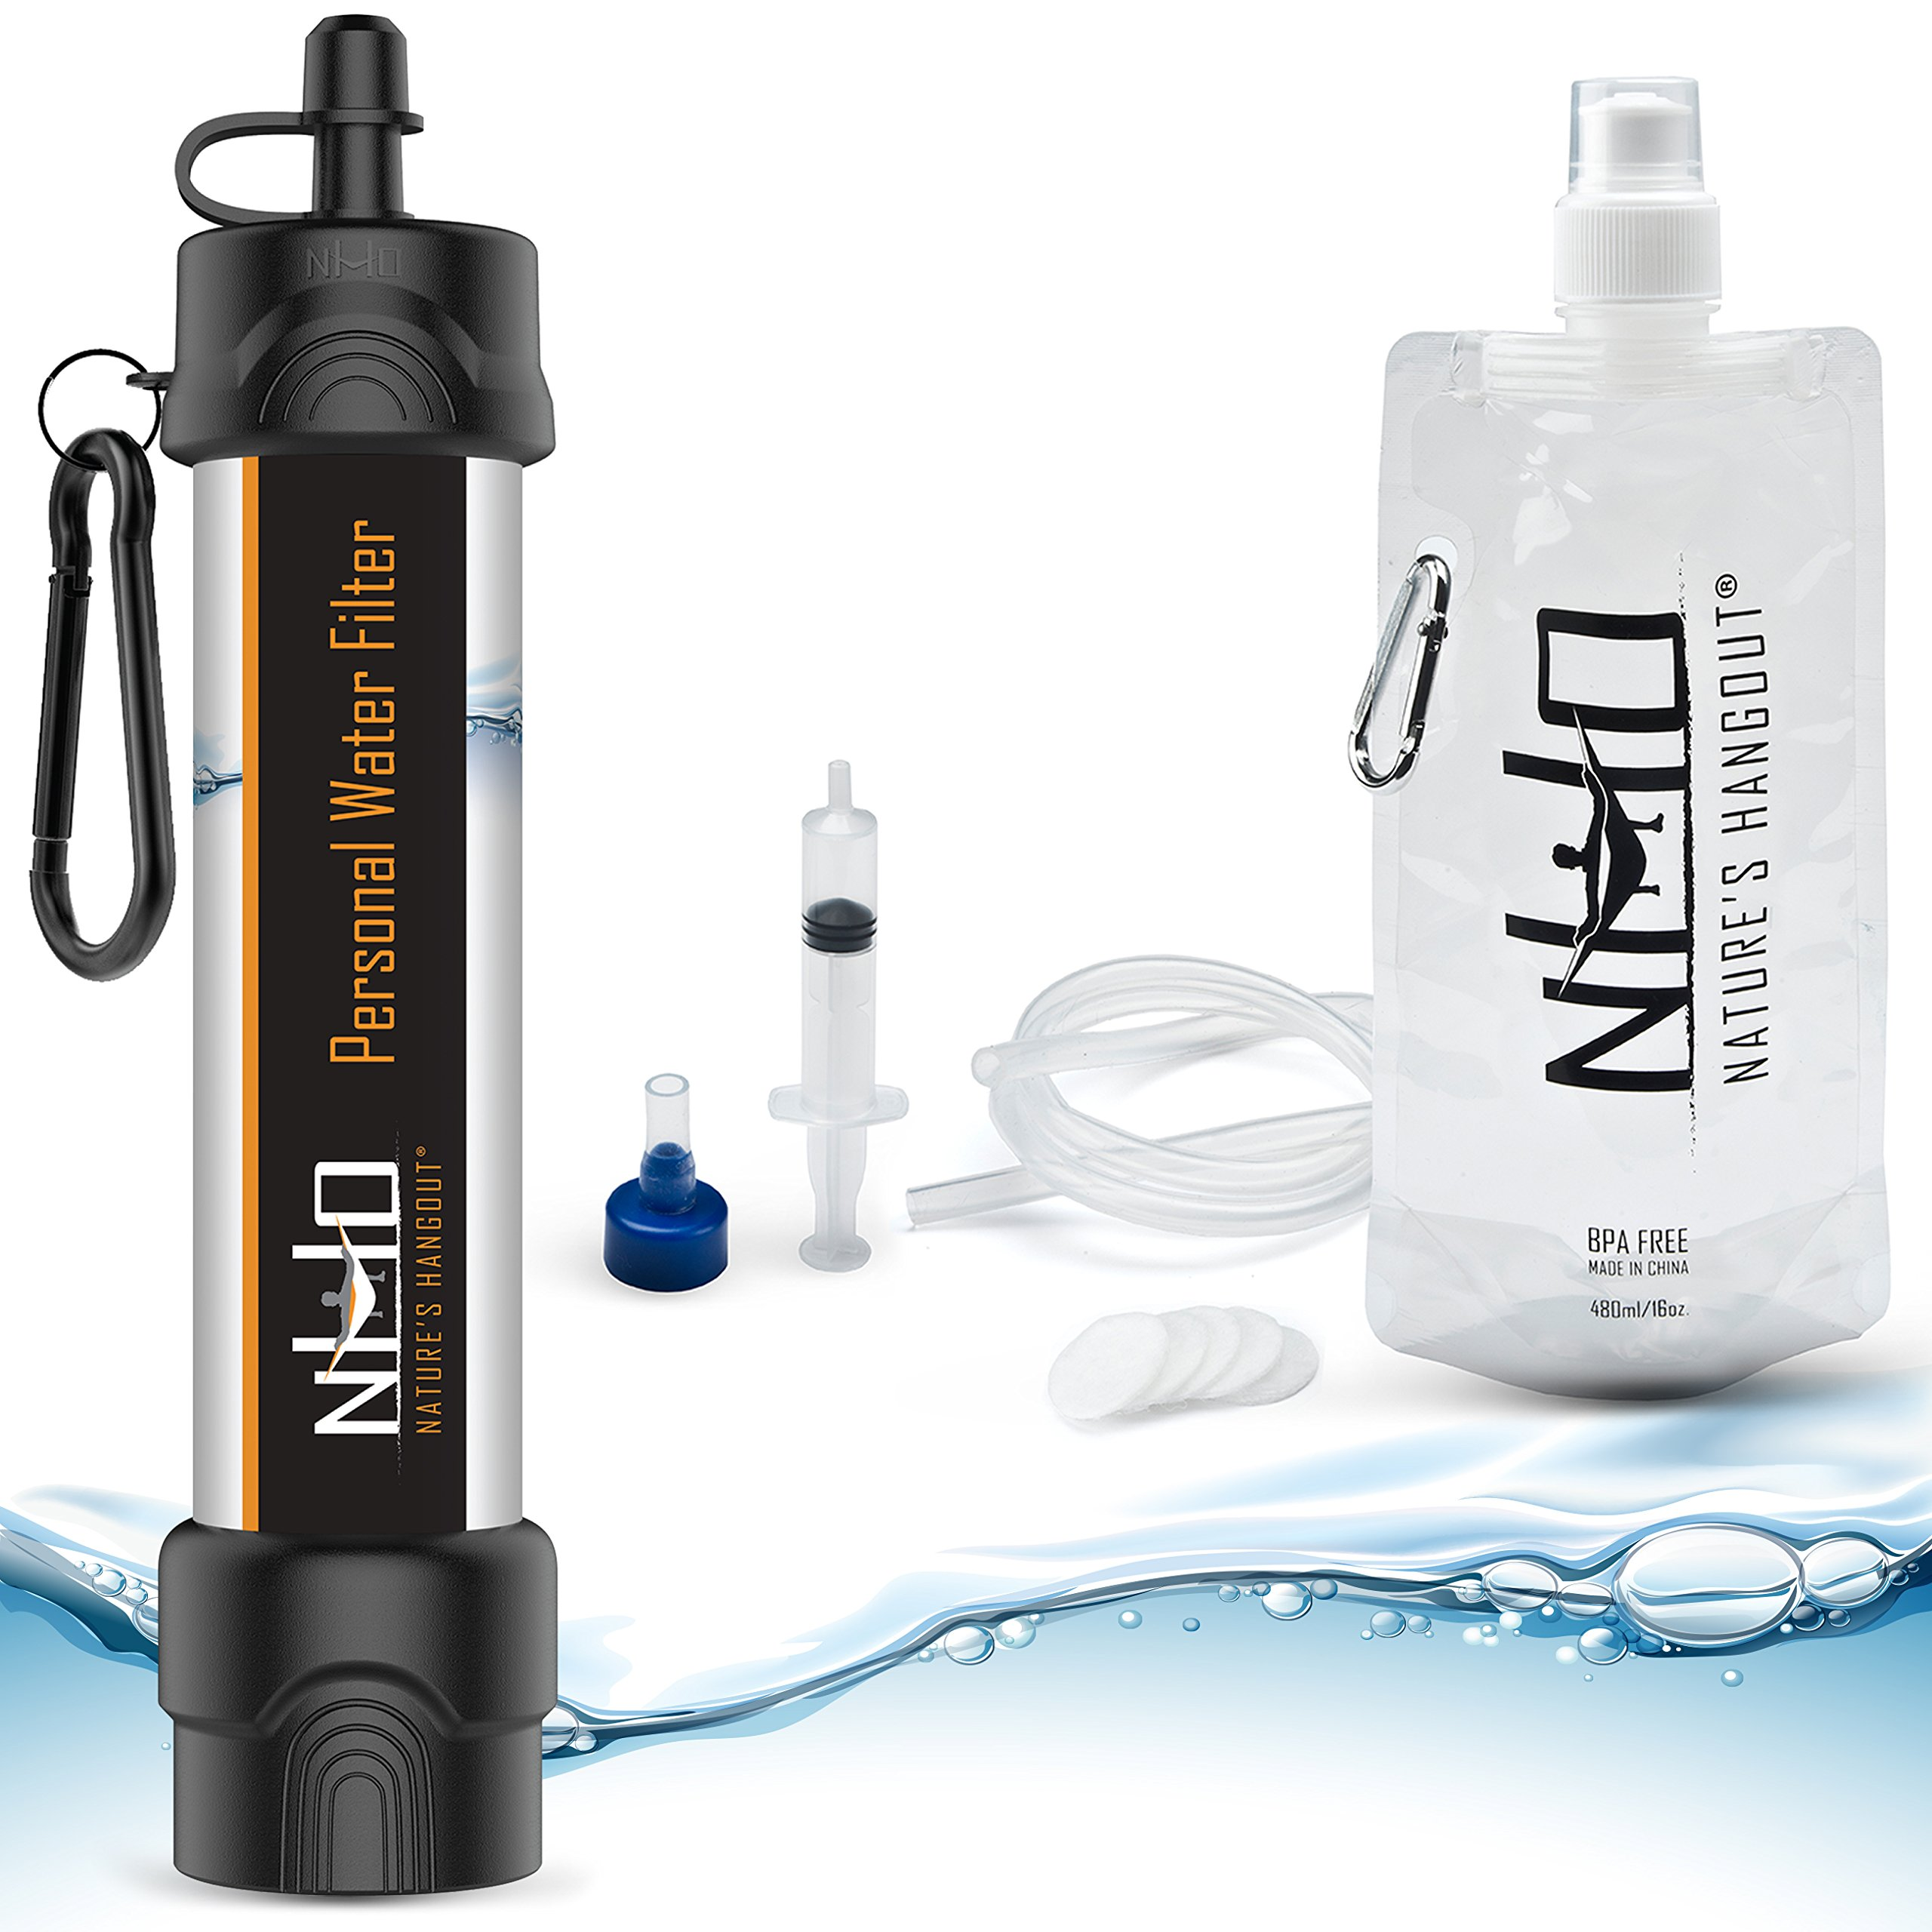 Nature's Hangout Personal Water Filter Straw for Camping, Hiking, Travel, and Emergency Preparedness with New .01 Nano Tech Filtration. Includes Boost Bag + Survival Tube + Flush Syringe